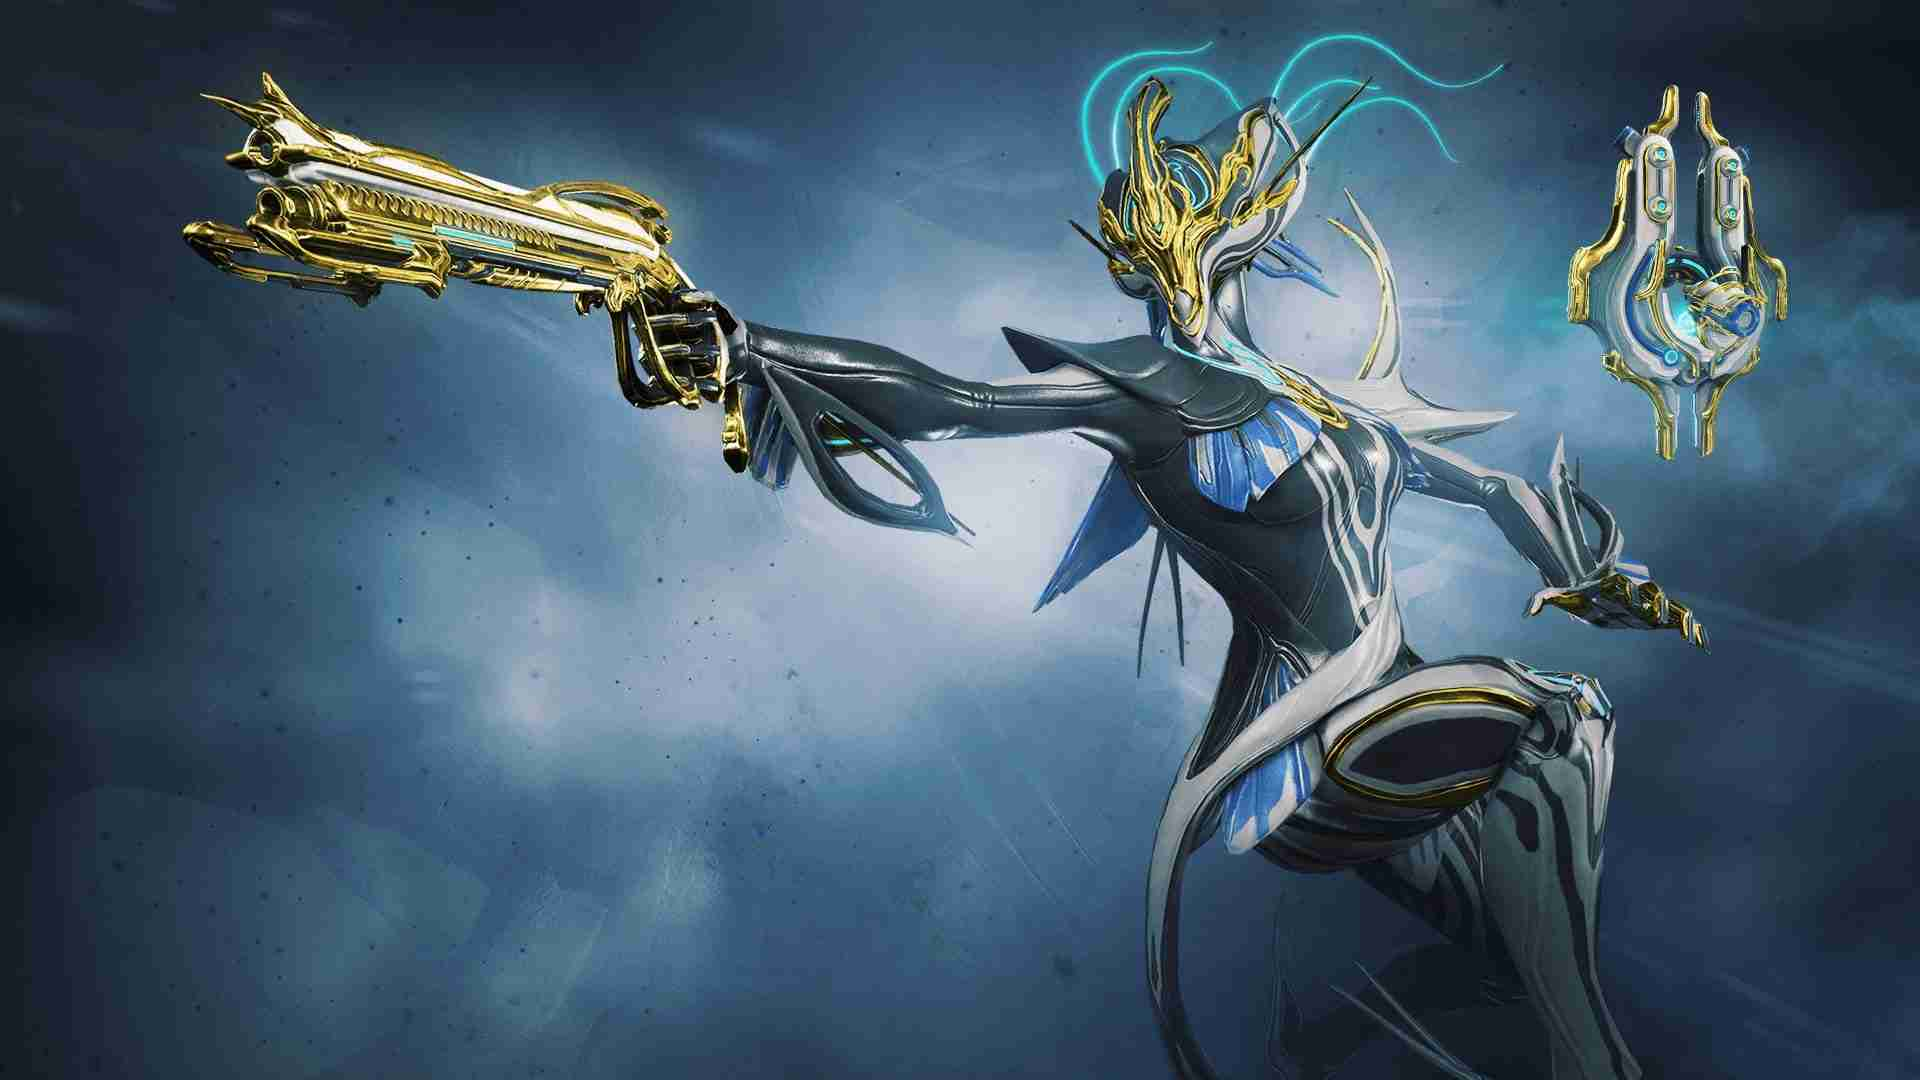 Warframe Tier List Warframe Best Ranked Heroes In 2020 The current name nuke is a placeholder for the concept design. warframe tier list warframe best